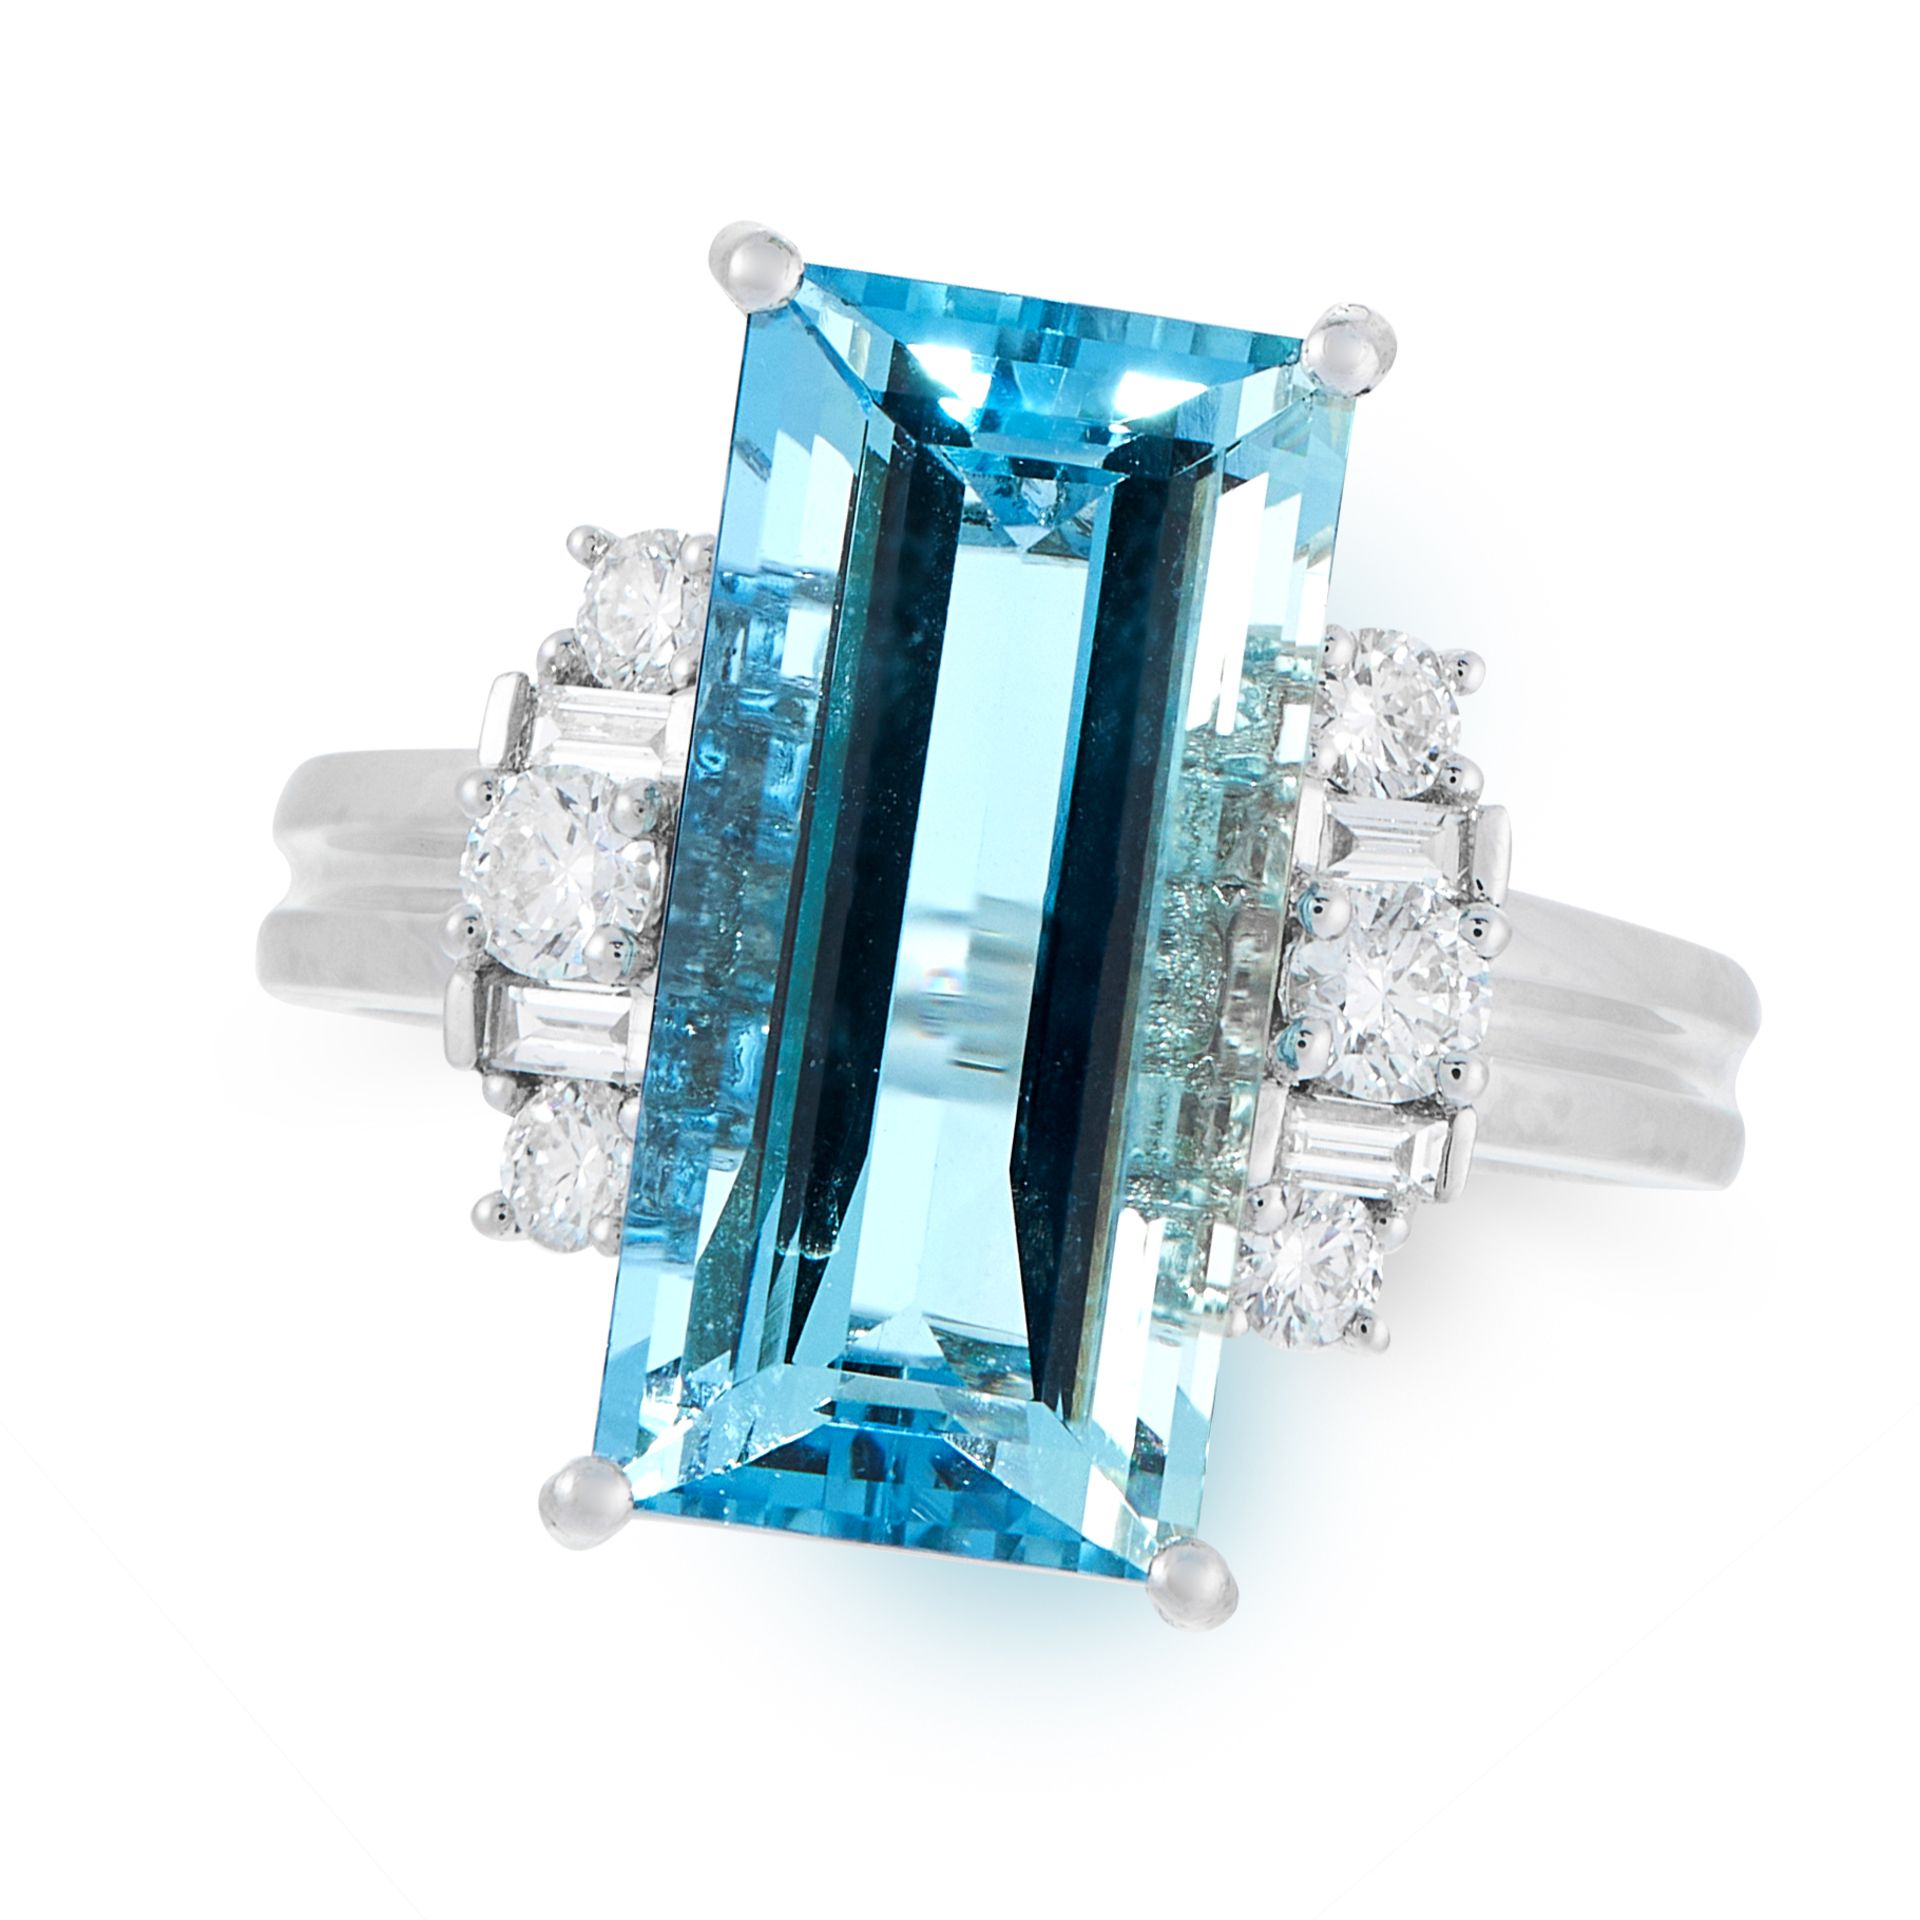 AN AQUAMARINE AND DIAMOND DRESS RING in platinum, set with a step cut aquamarine of 6.06 carats